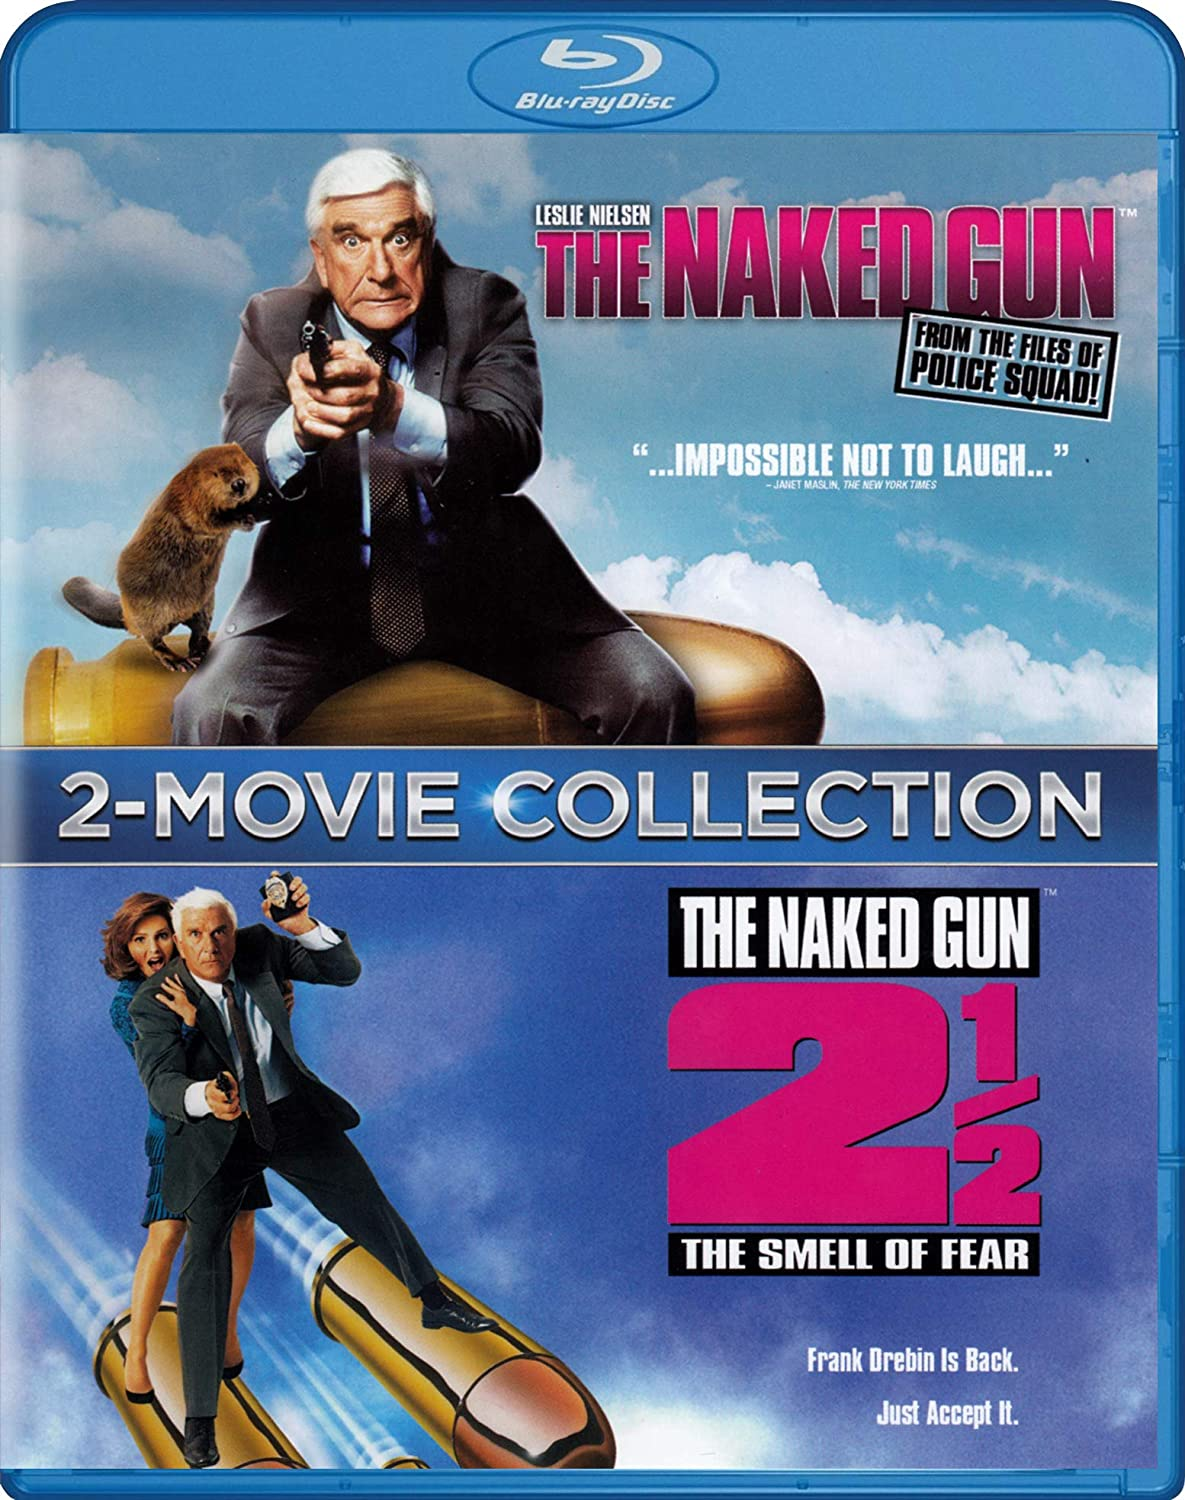 The Naked Gun: From the Files of Police Squad!, 1988 (Film